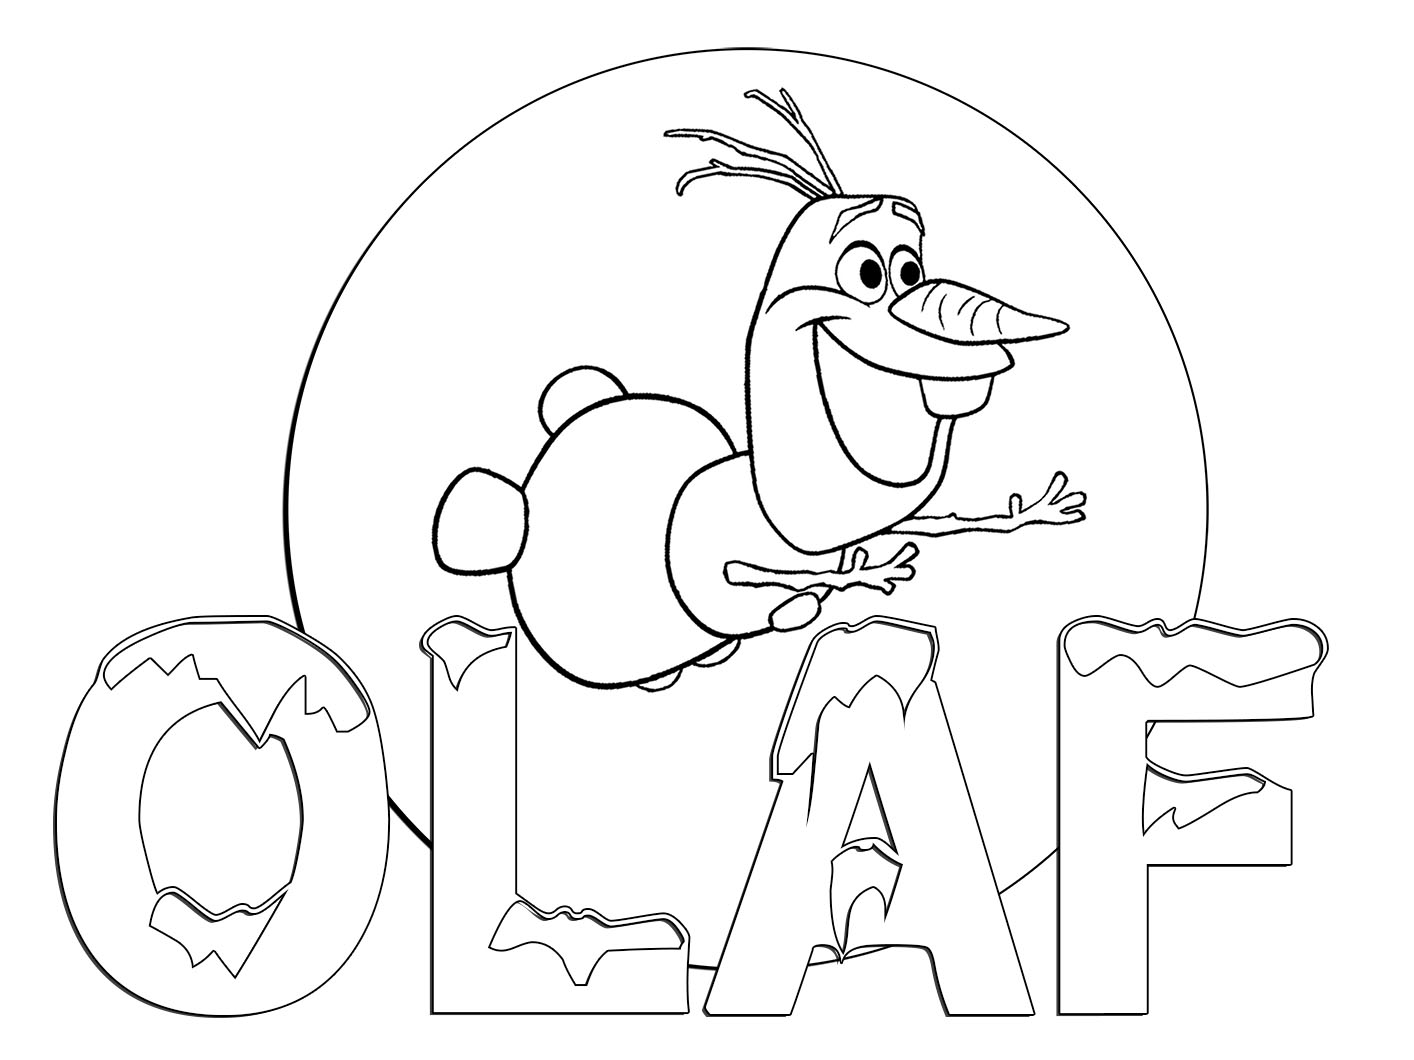 coloring pages images - photo#15